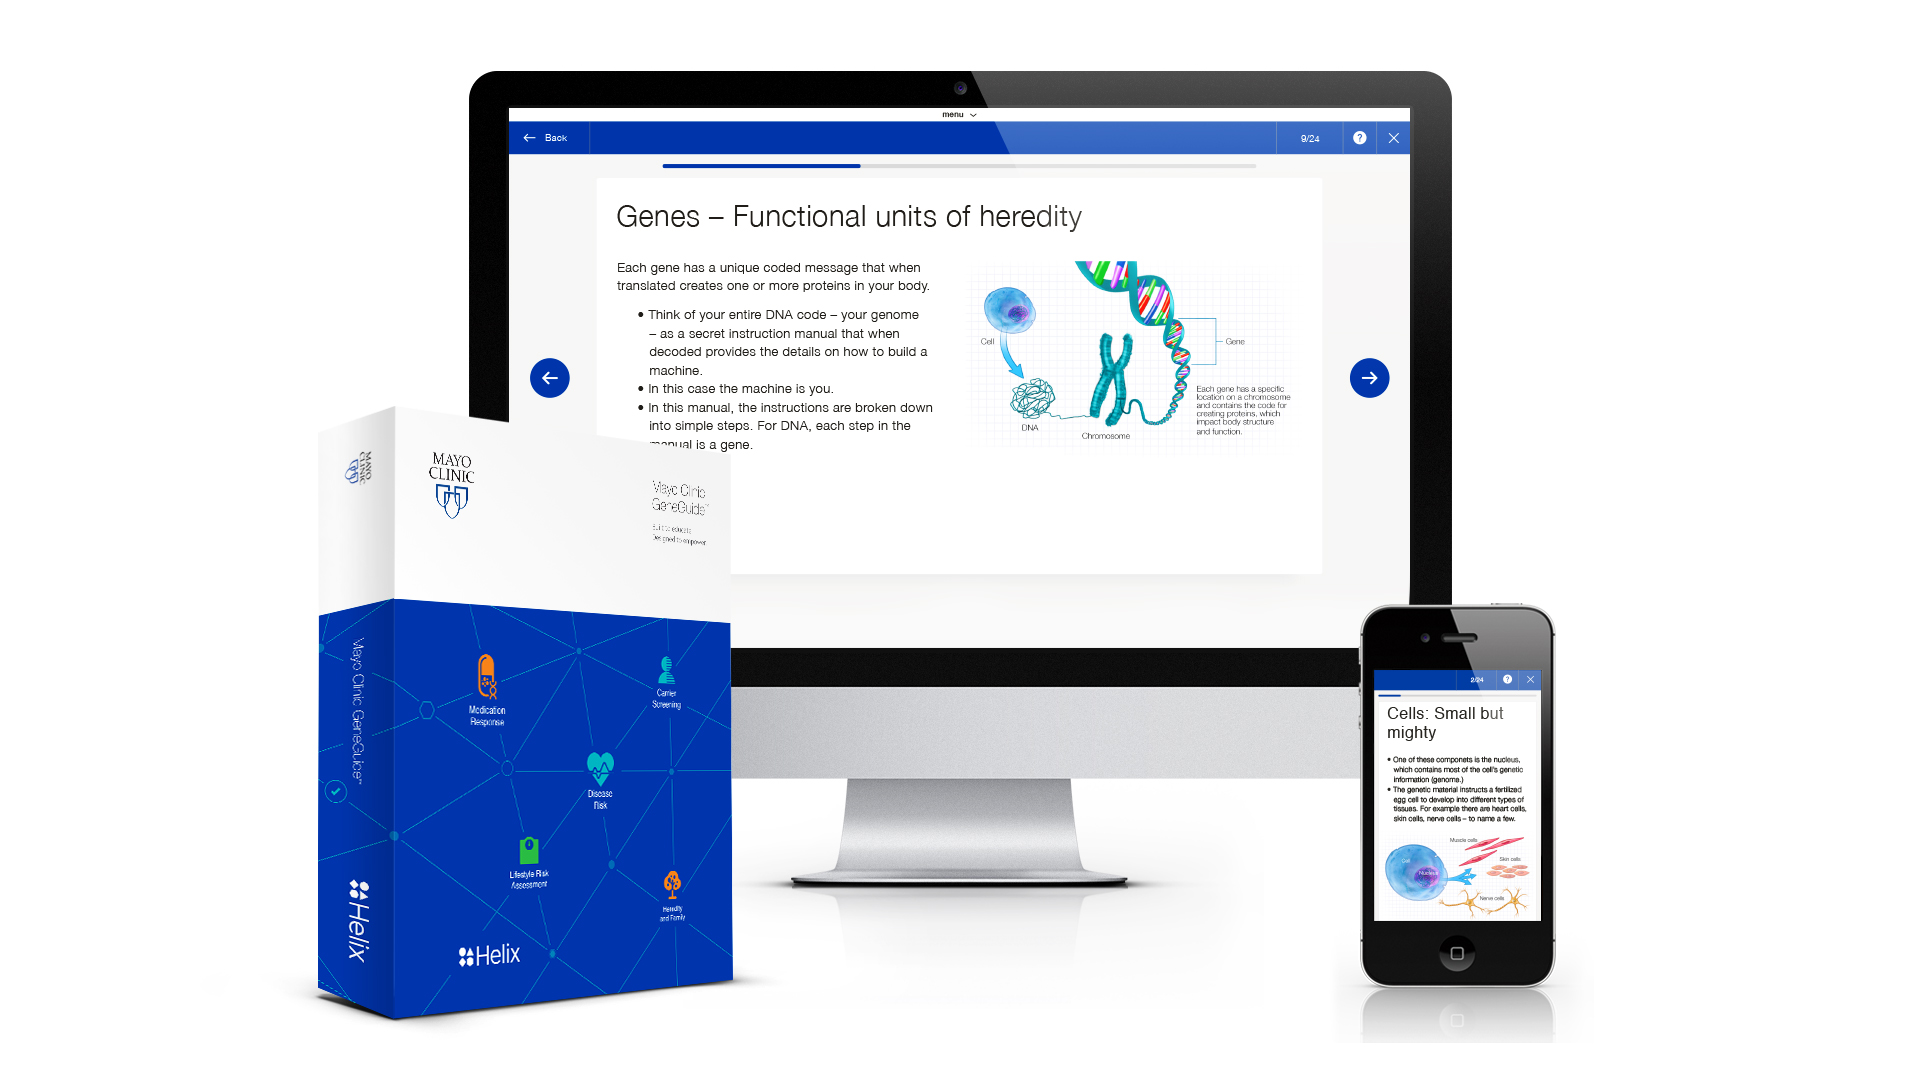 Learning Disorders Know The Signs How To Help Mayo Clinic >> New Mayo Clinic Geneguide Dna Testing Application Provides Genetic